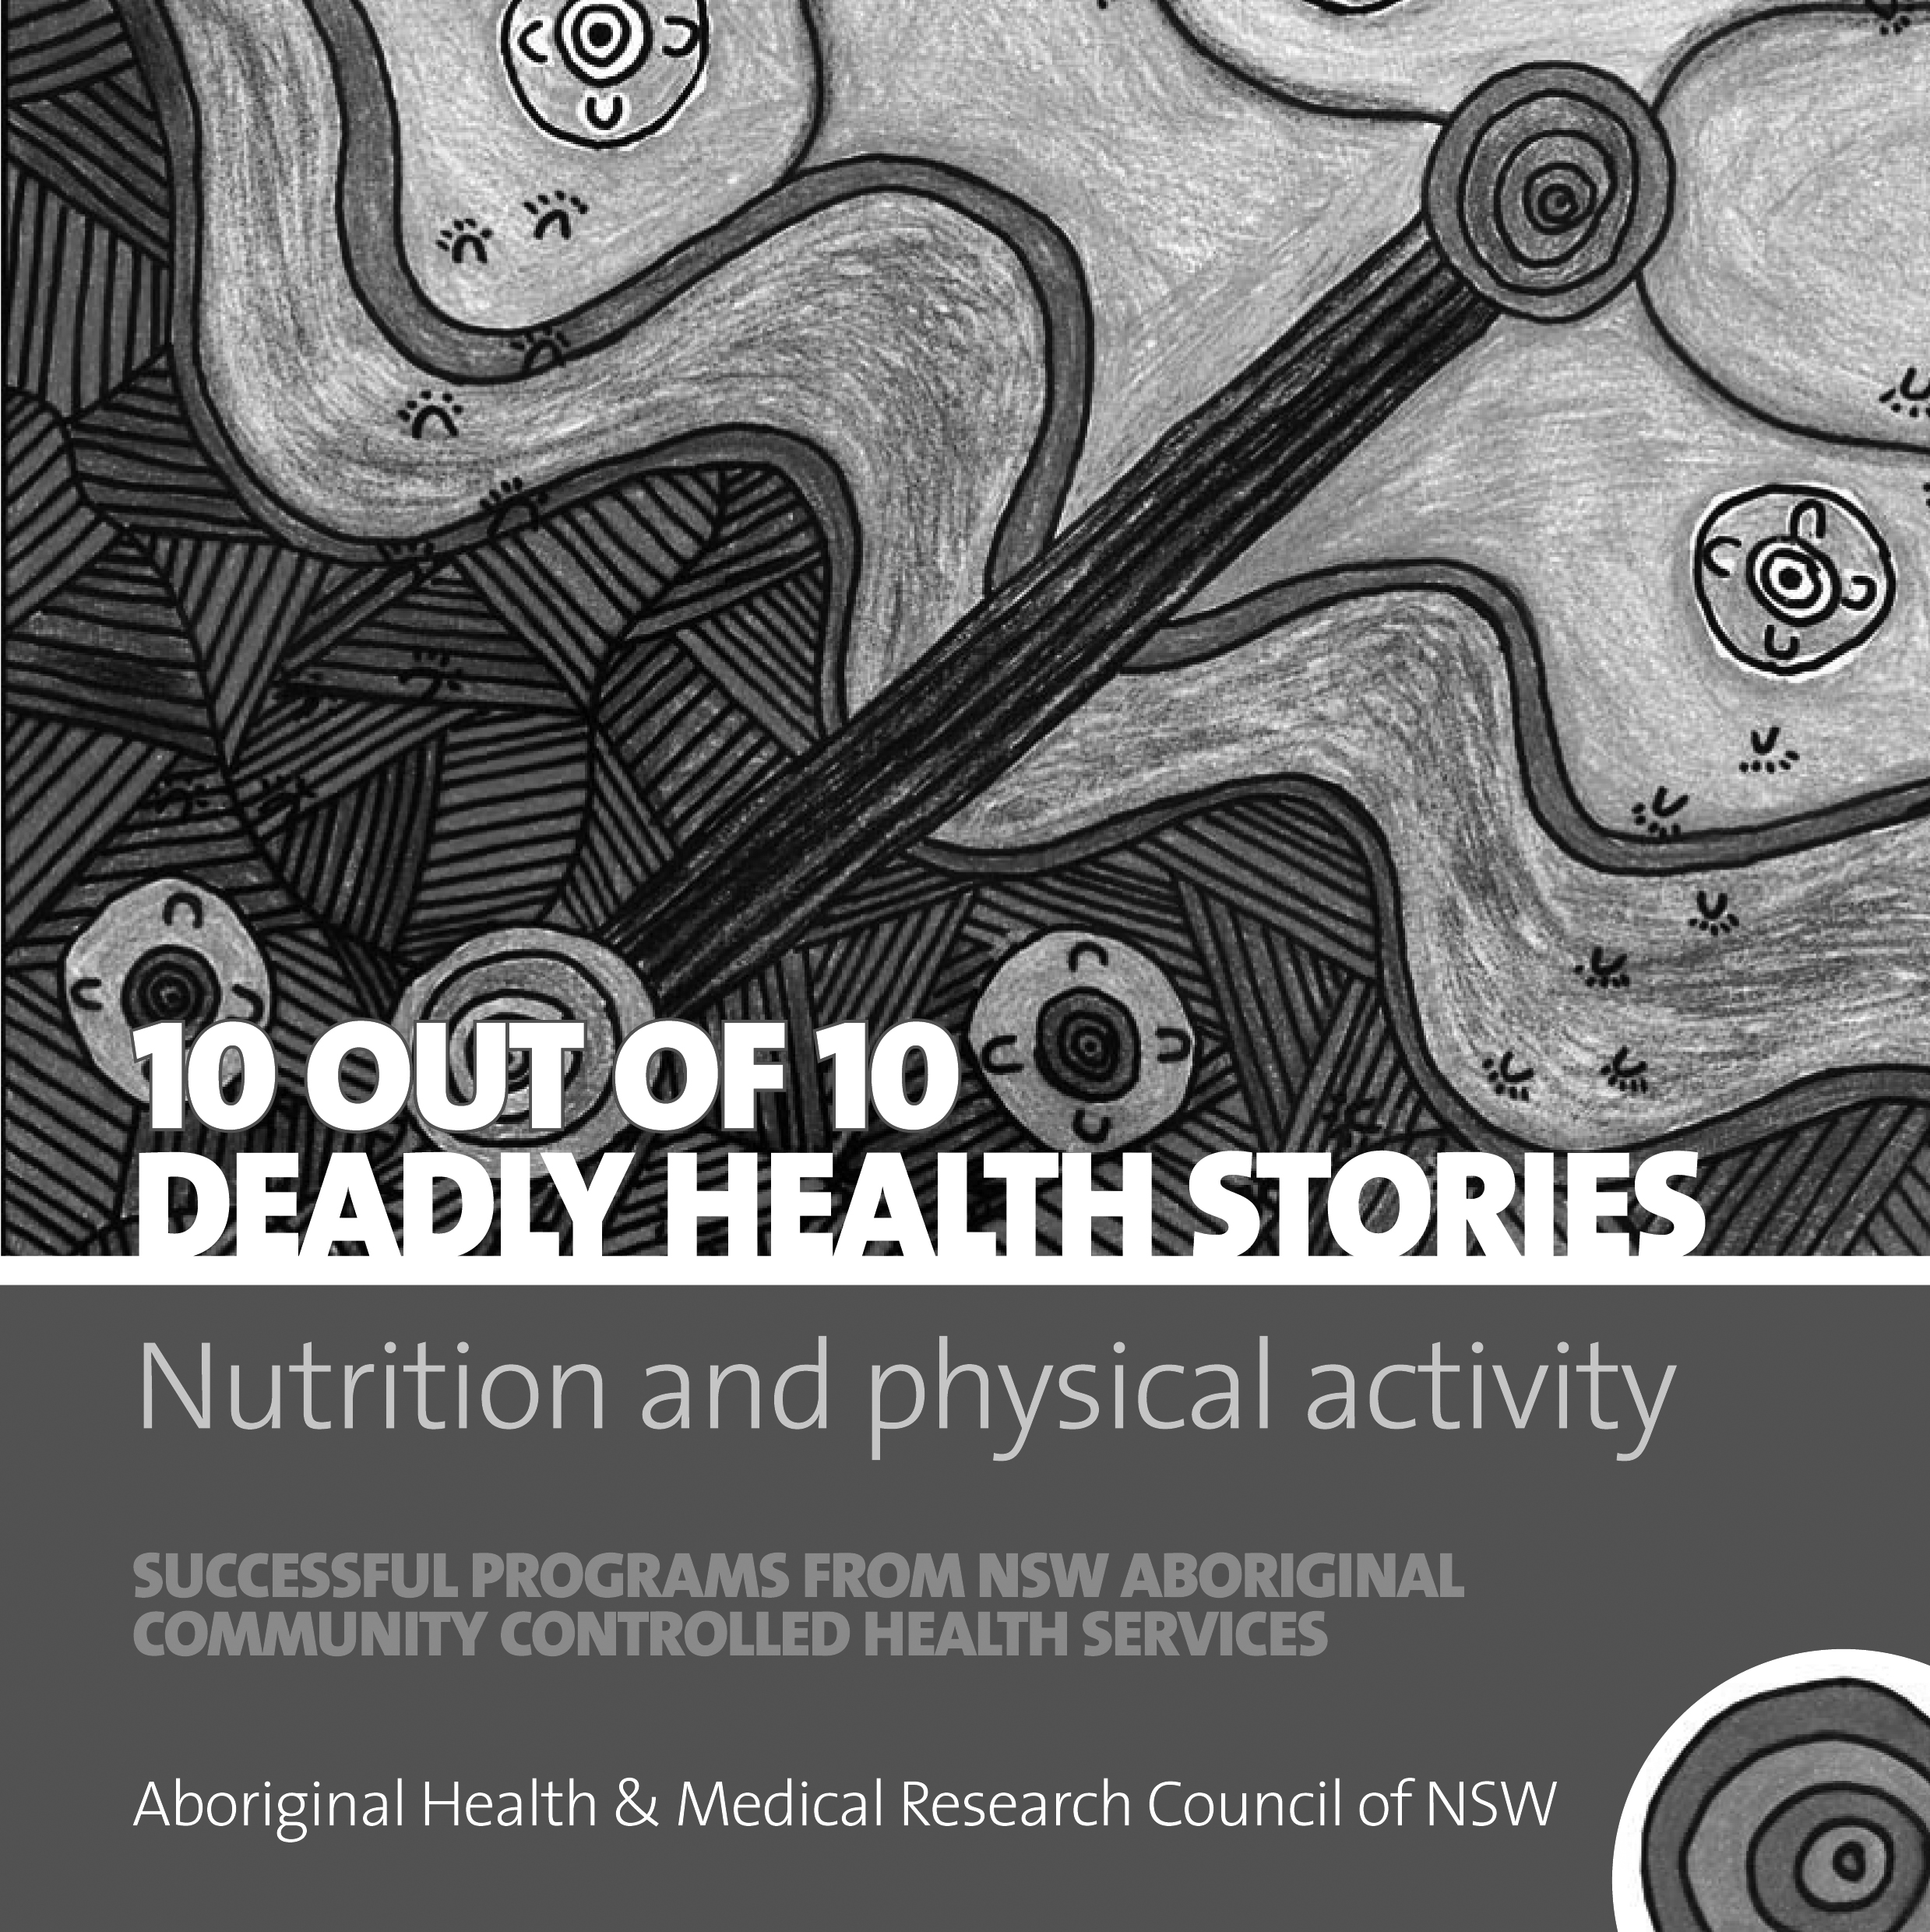 10 out of 10 deadly health stories - nutrition and physical activity